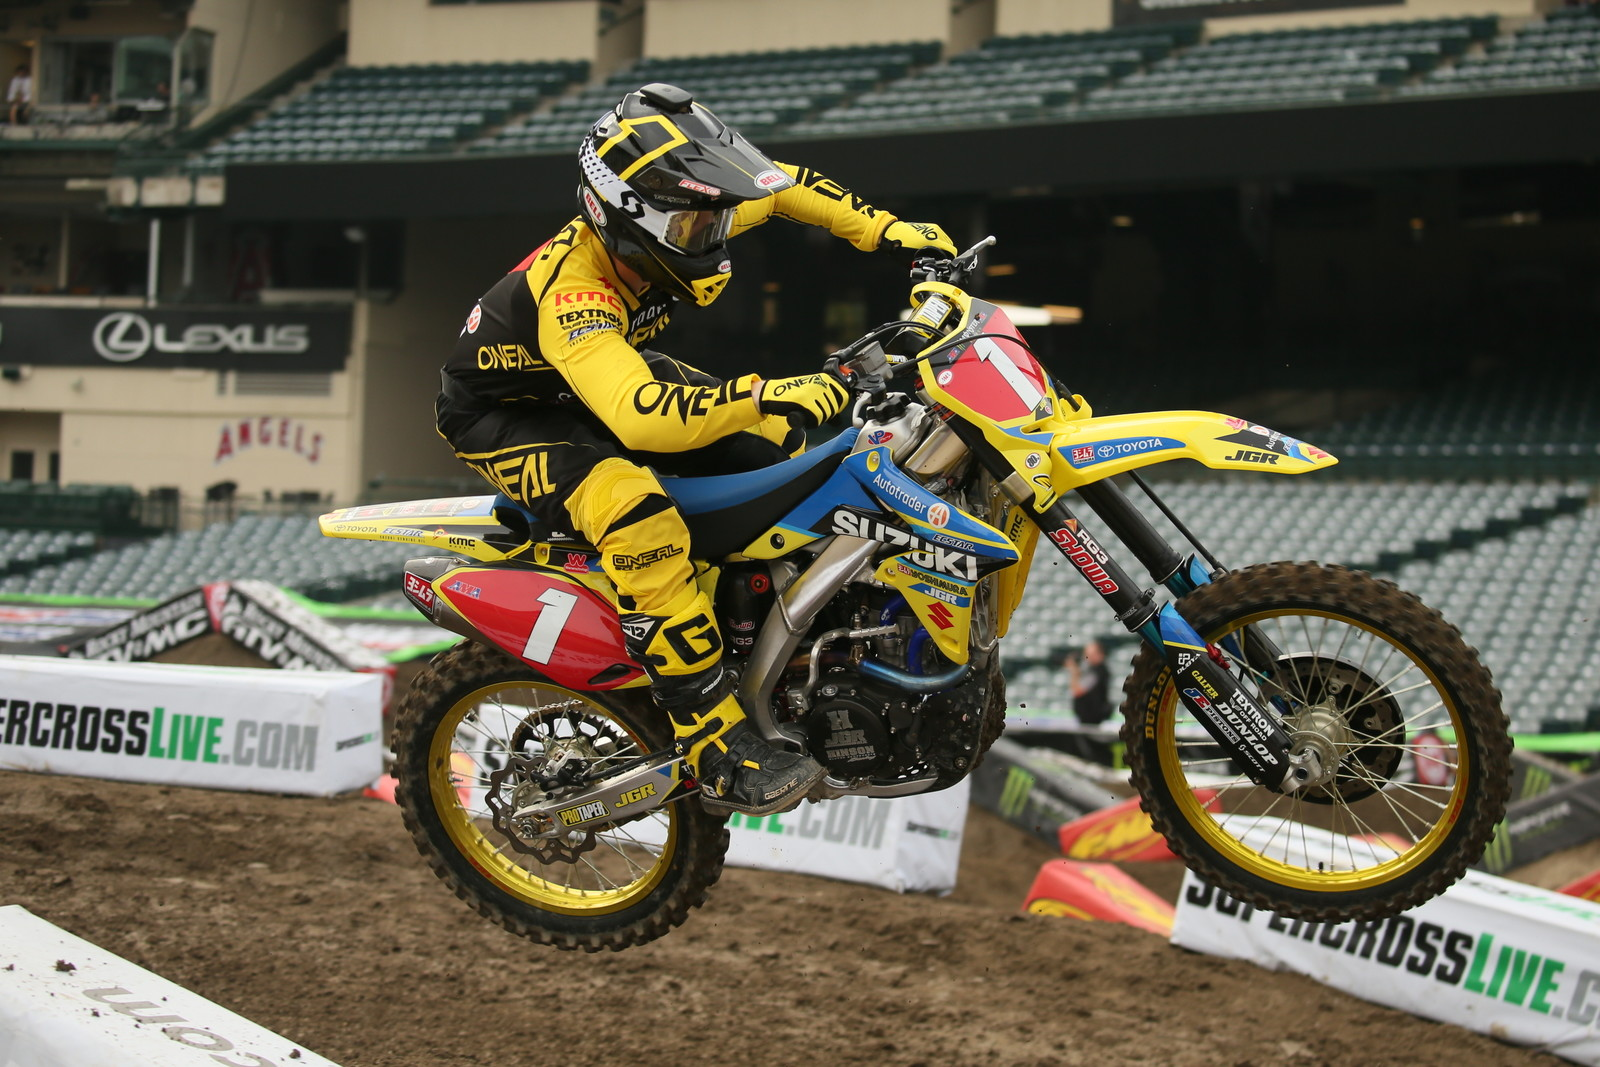 Justin Hill was fast on his RMZ250 in free practice.